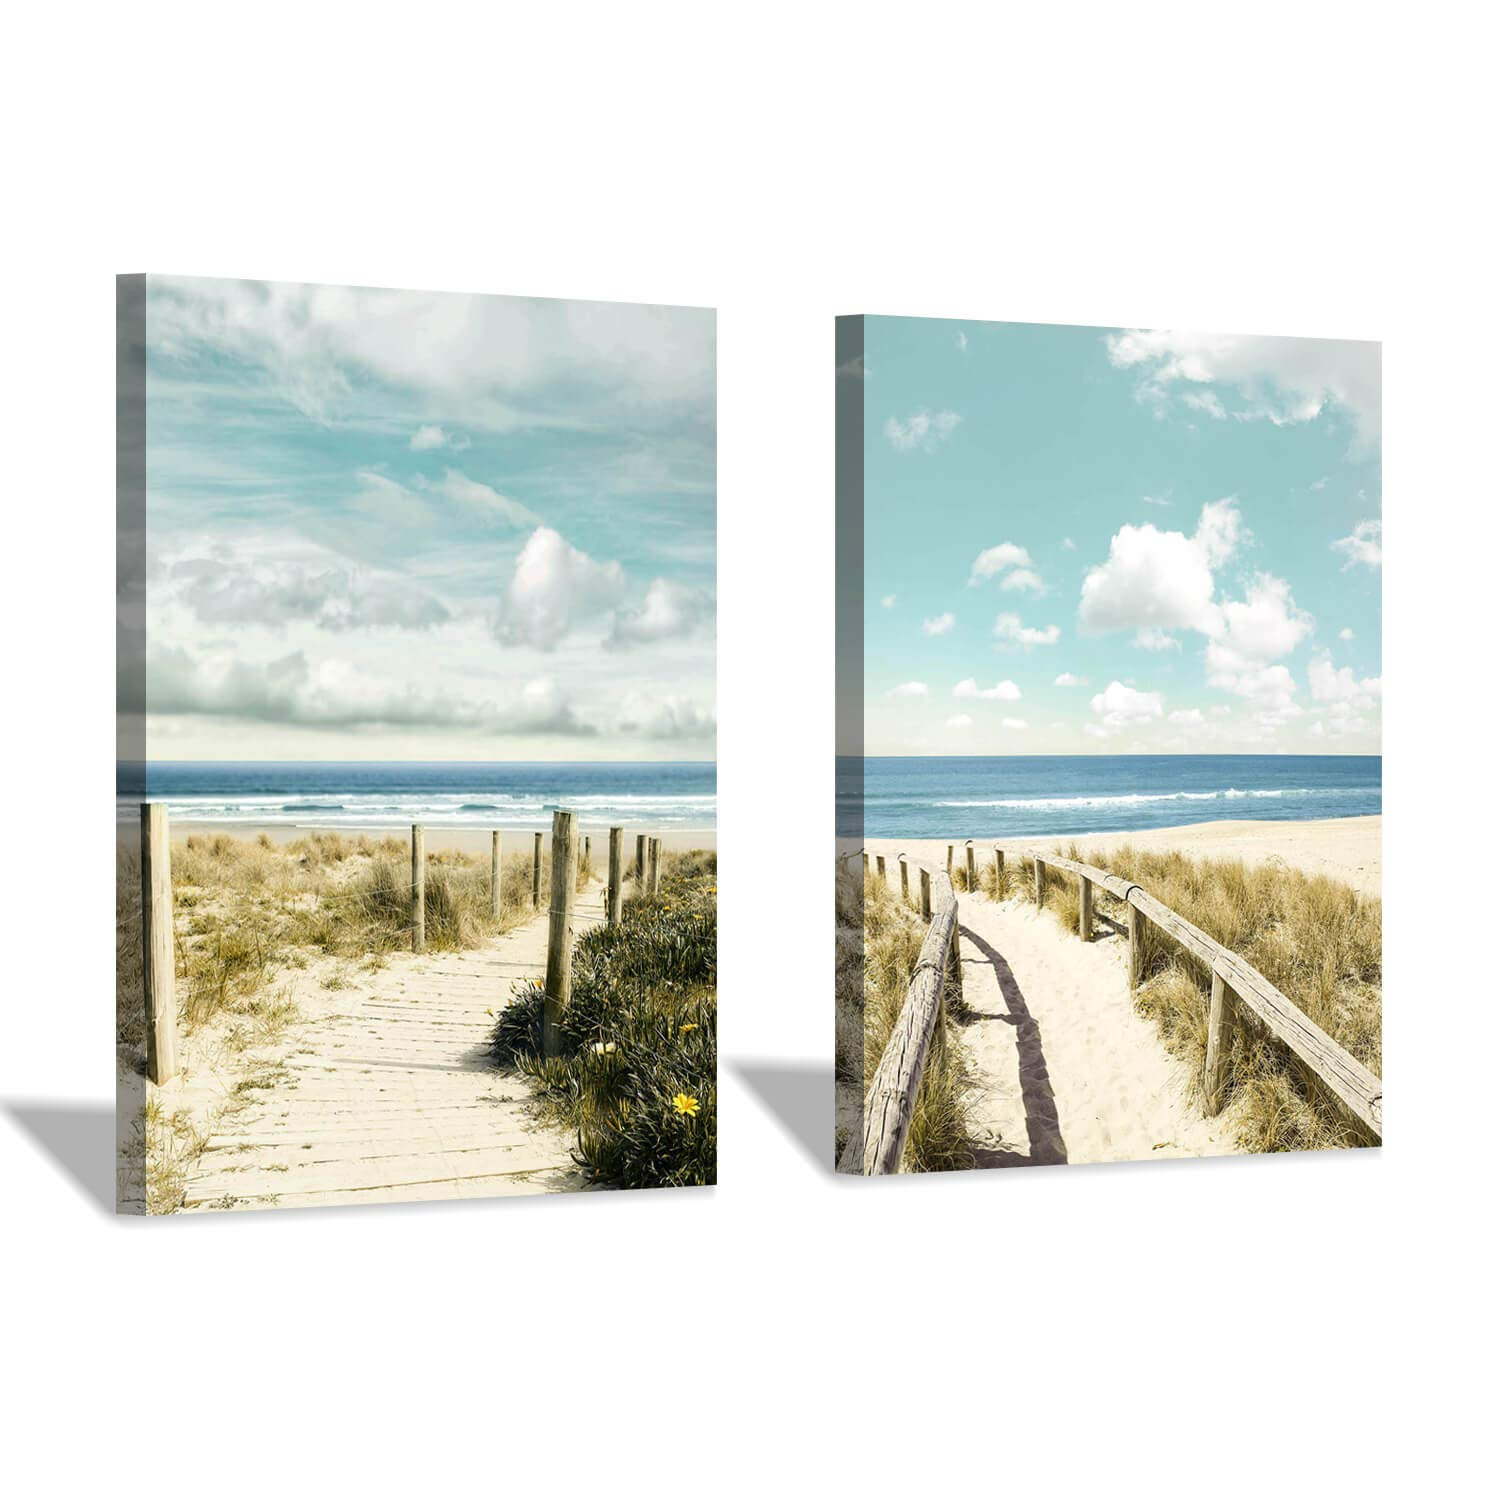 Beach Pathway Canvas Wall Art: Coastal Fences Picture Painting Print for Wall Decor(12''x16''x2pcs)